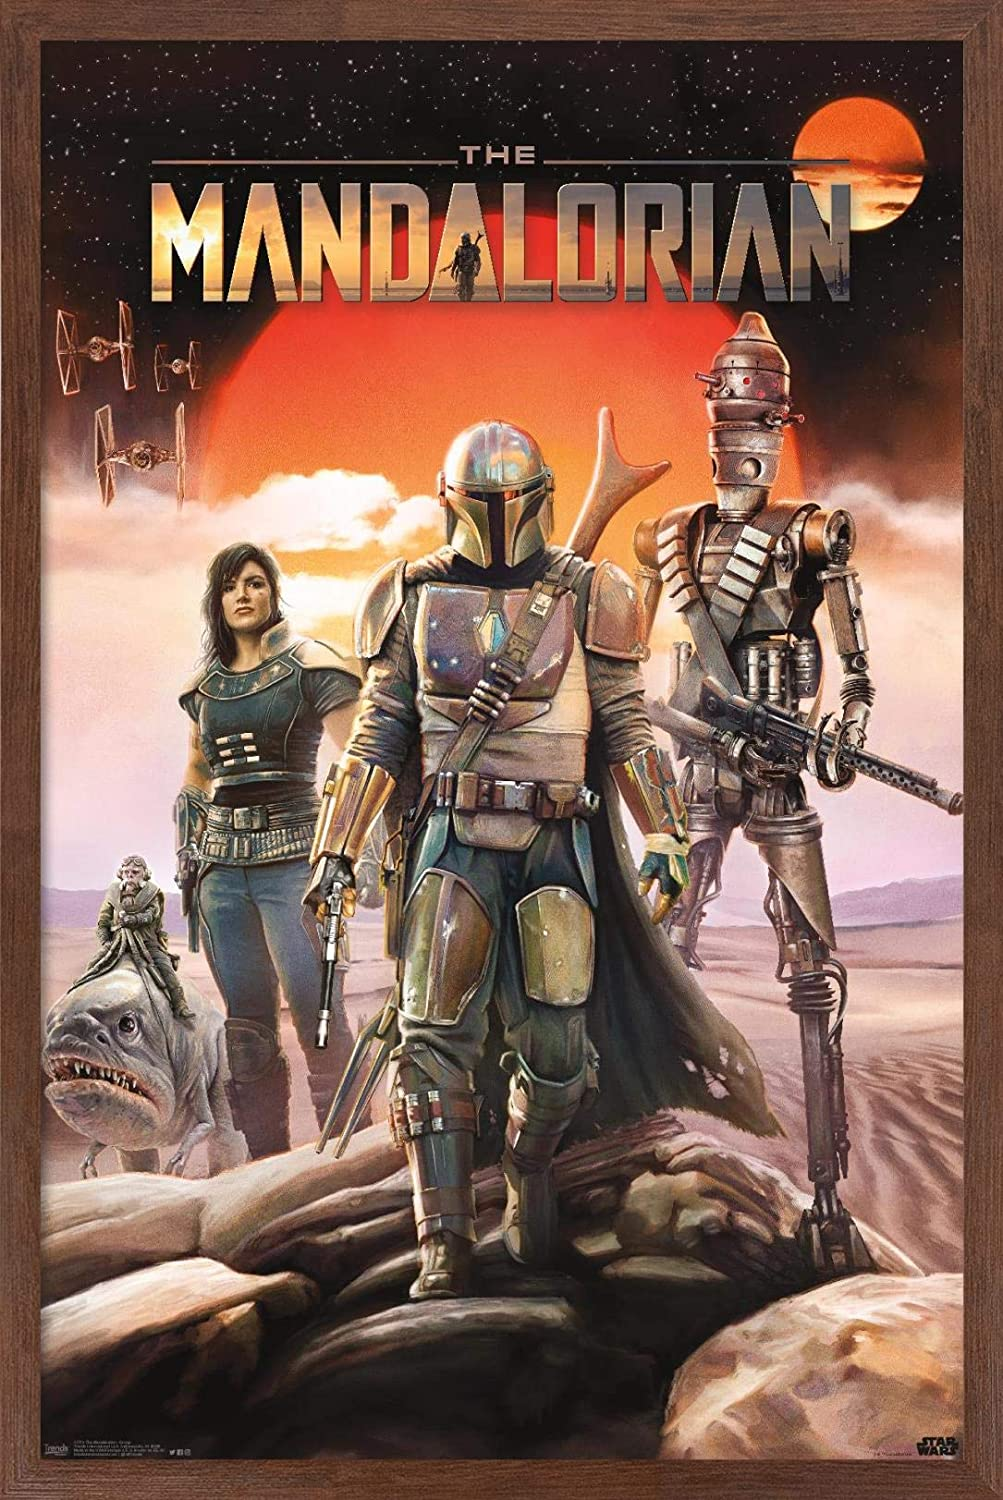 Image result for The Mandalorian poster